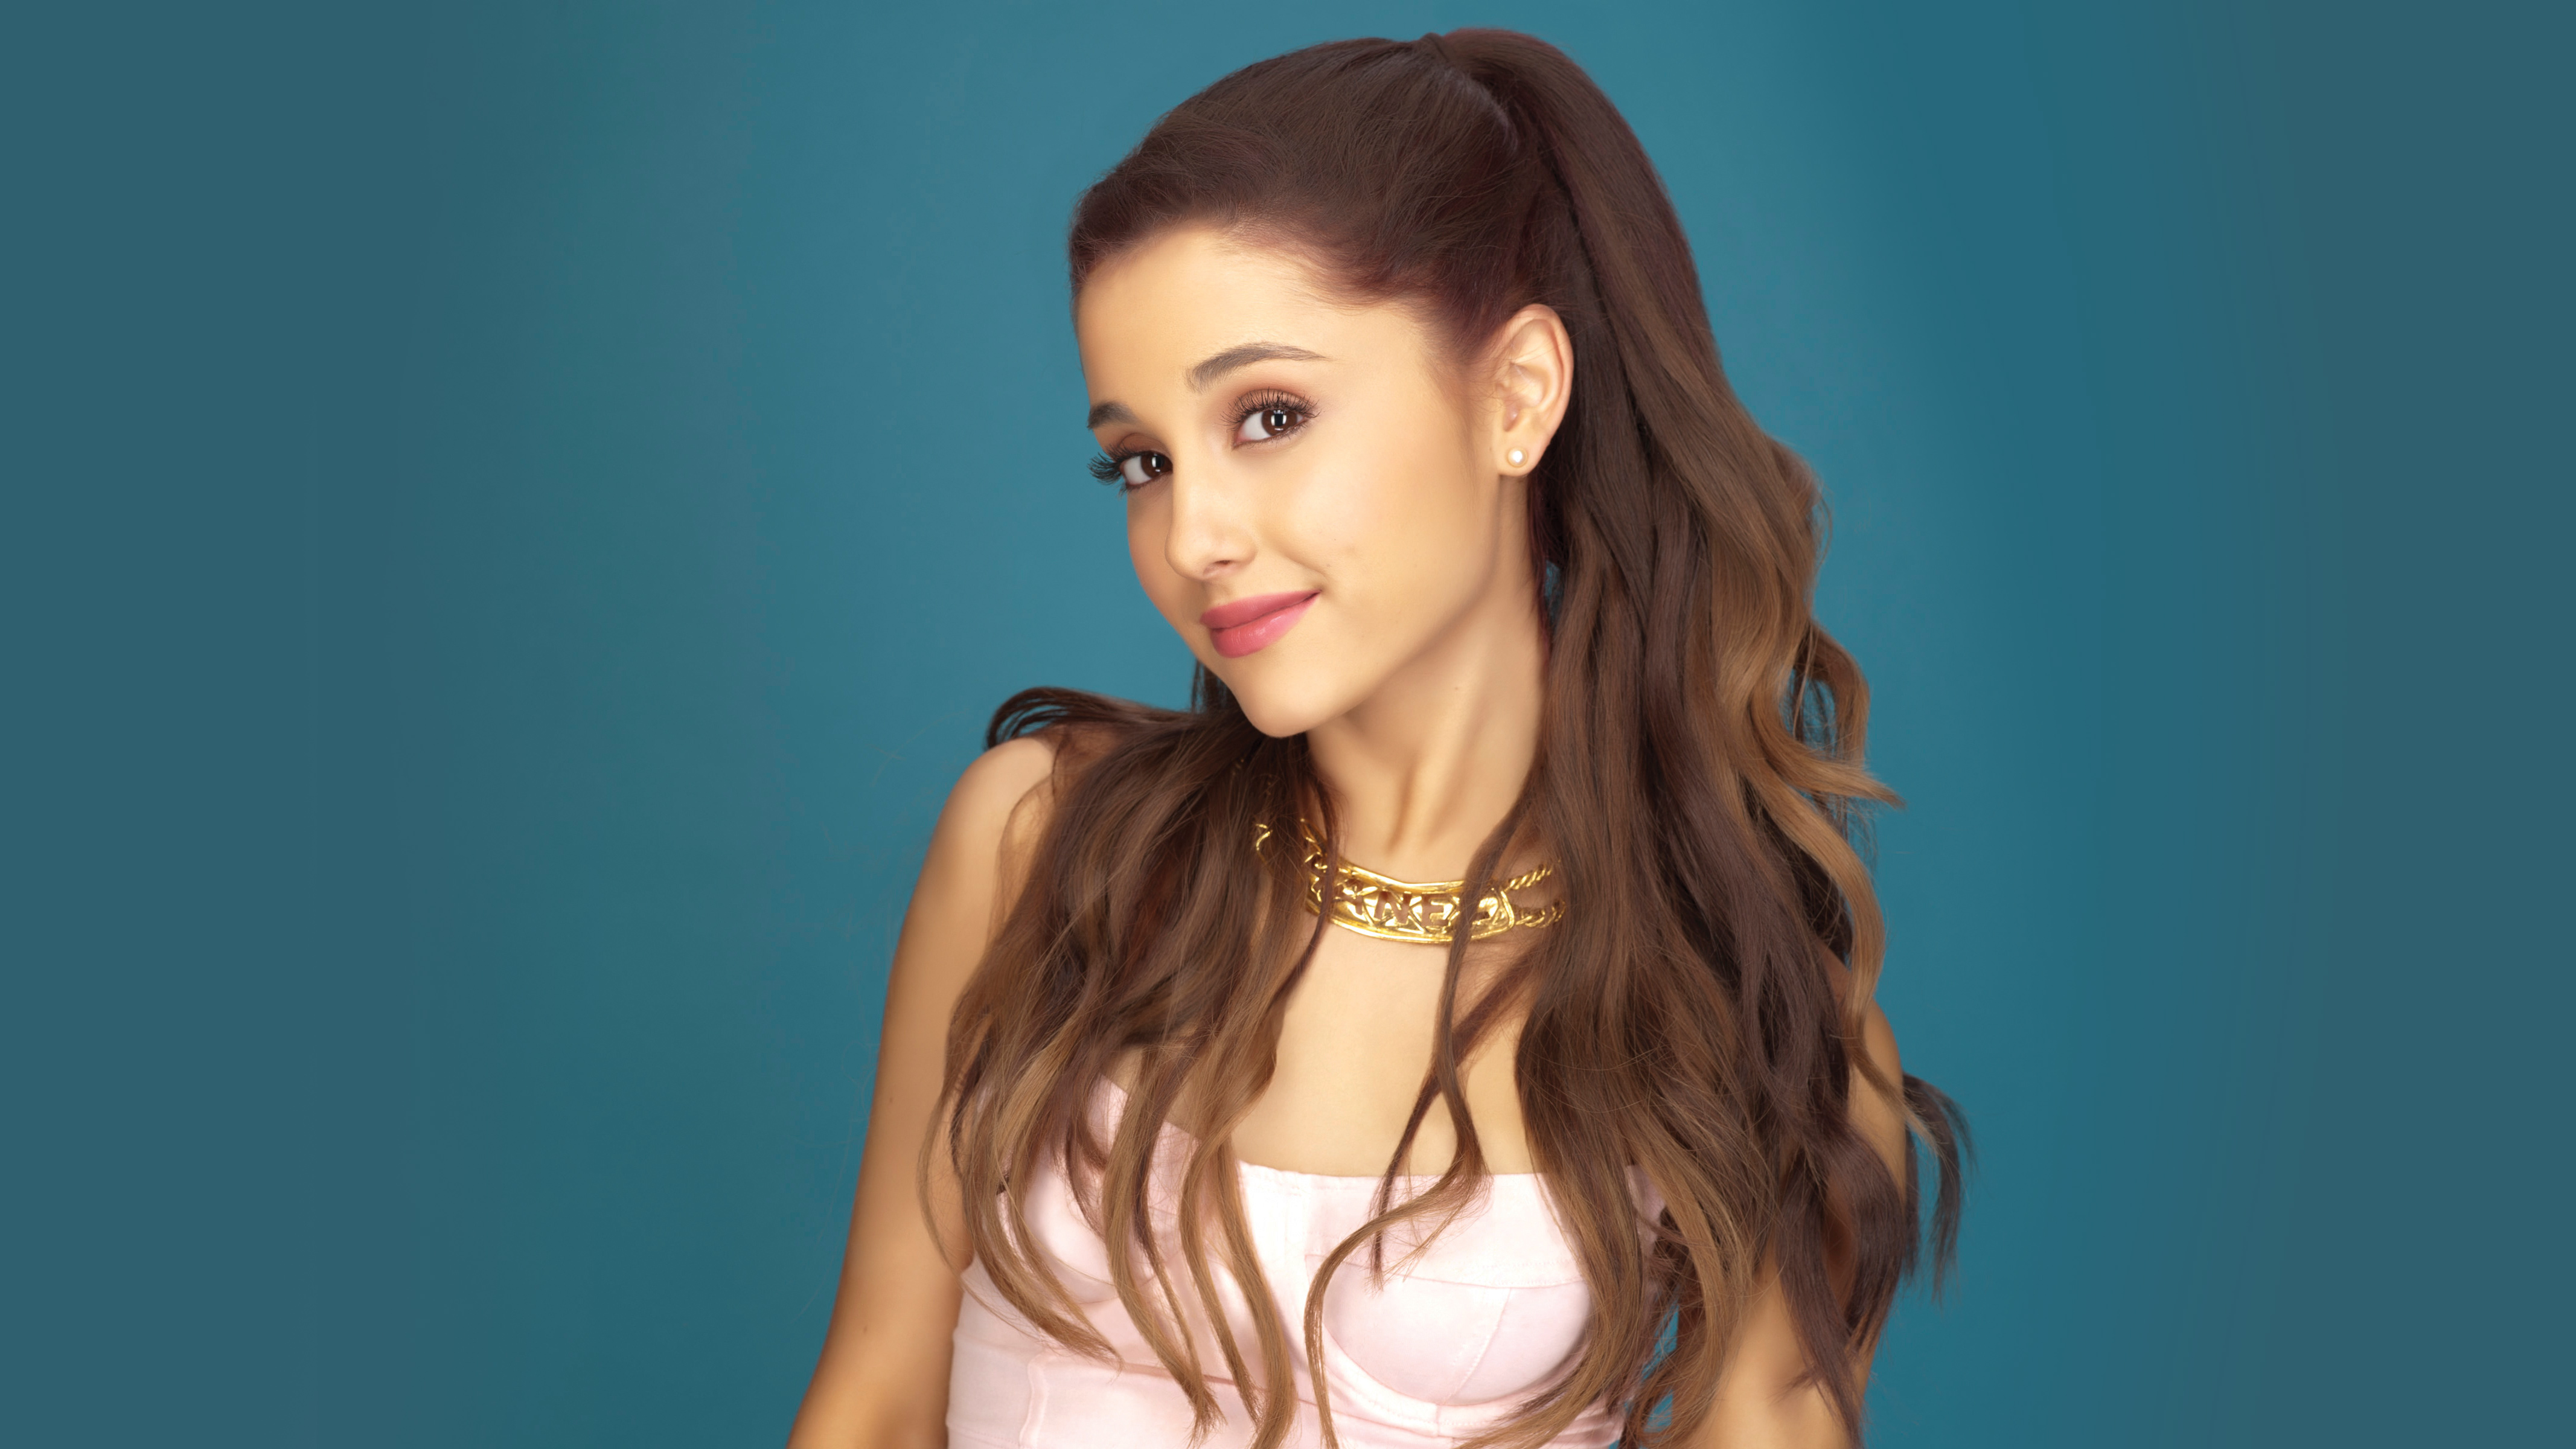 ariana grande 4k widescreen computer background 1100